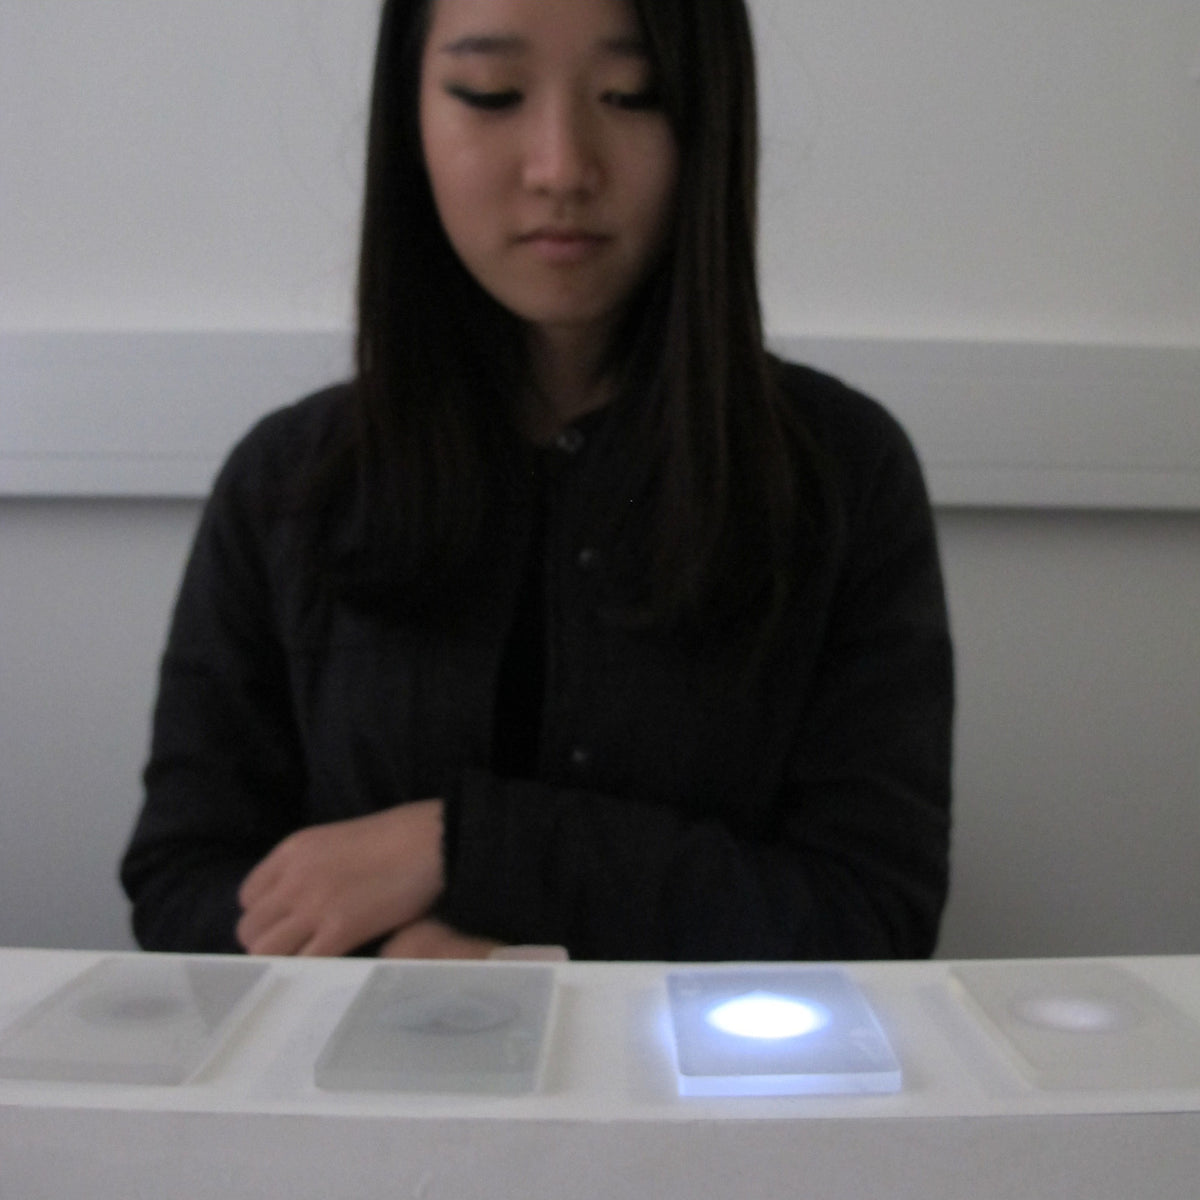 Exploring biorhythms with The Light Box Experiment